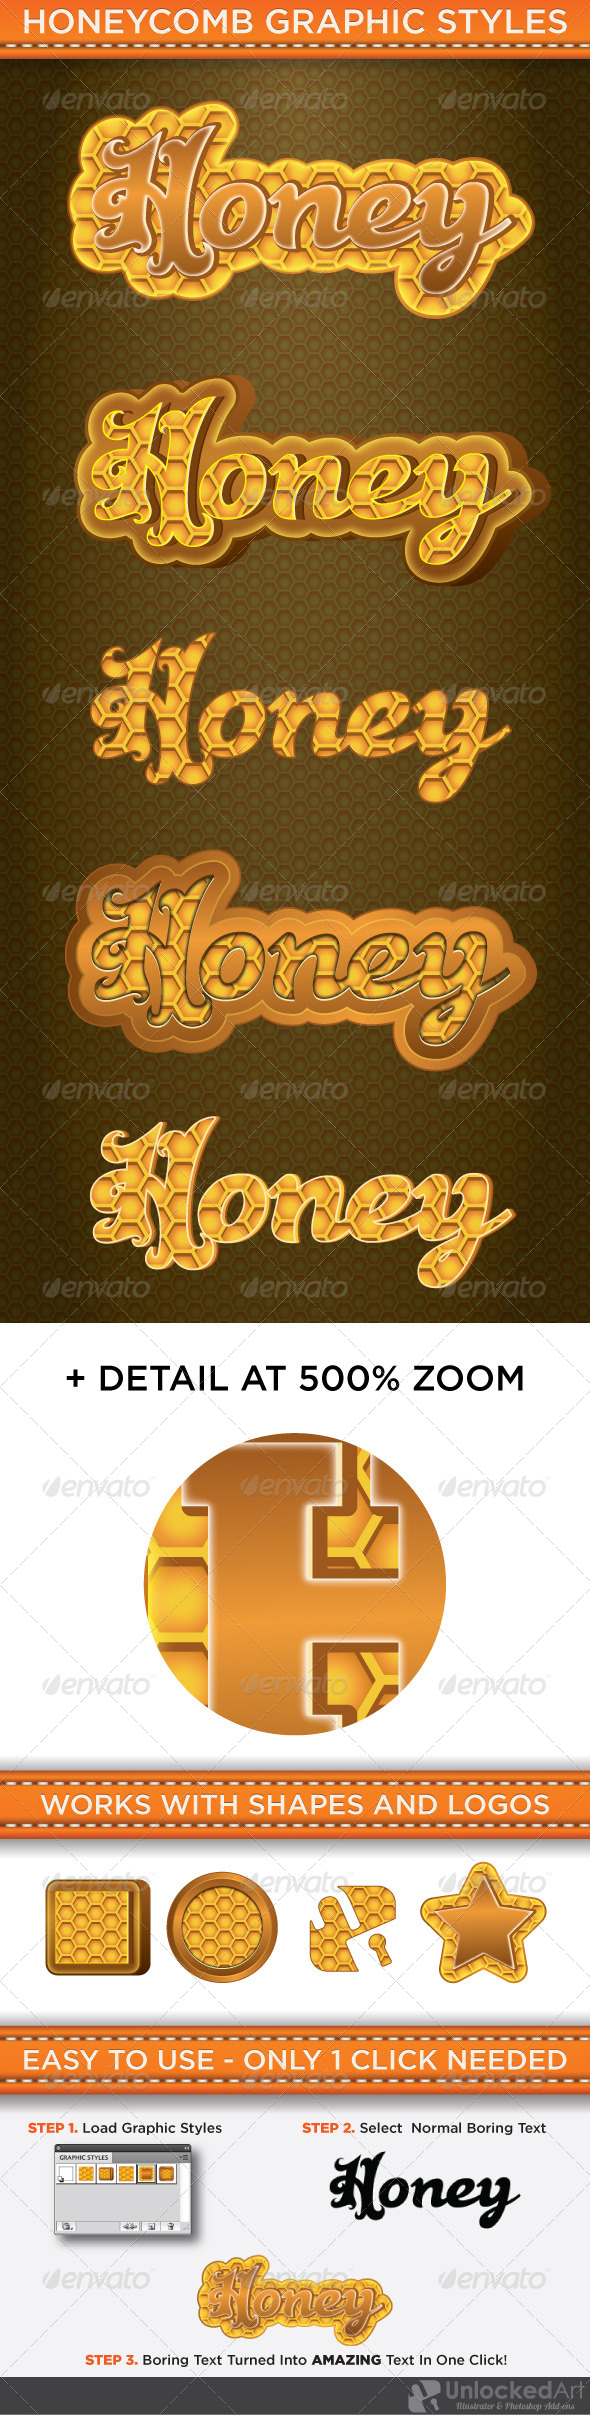 GraphicRiver HoneyComb Graphic Styles 4659488